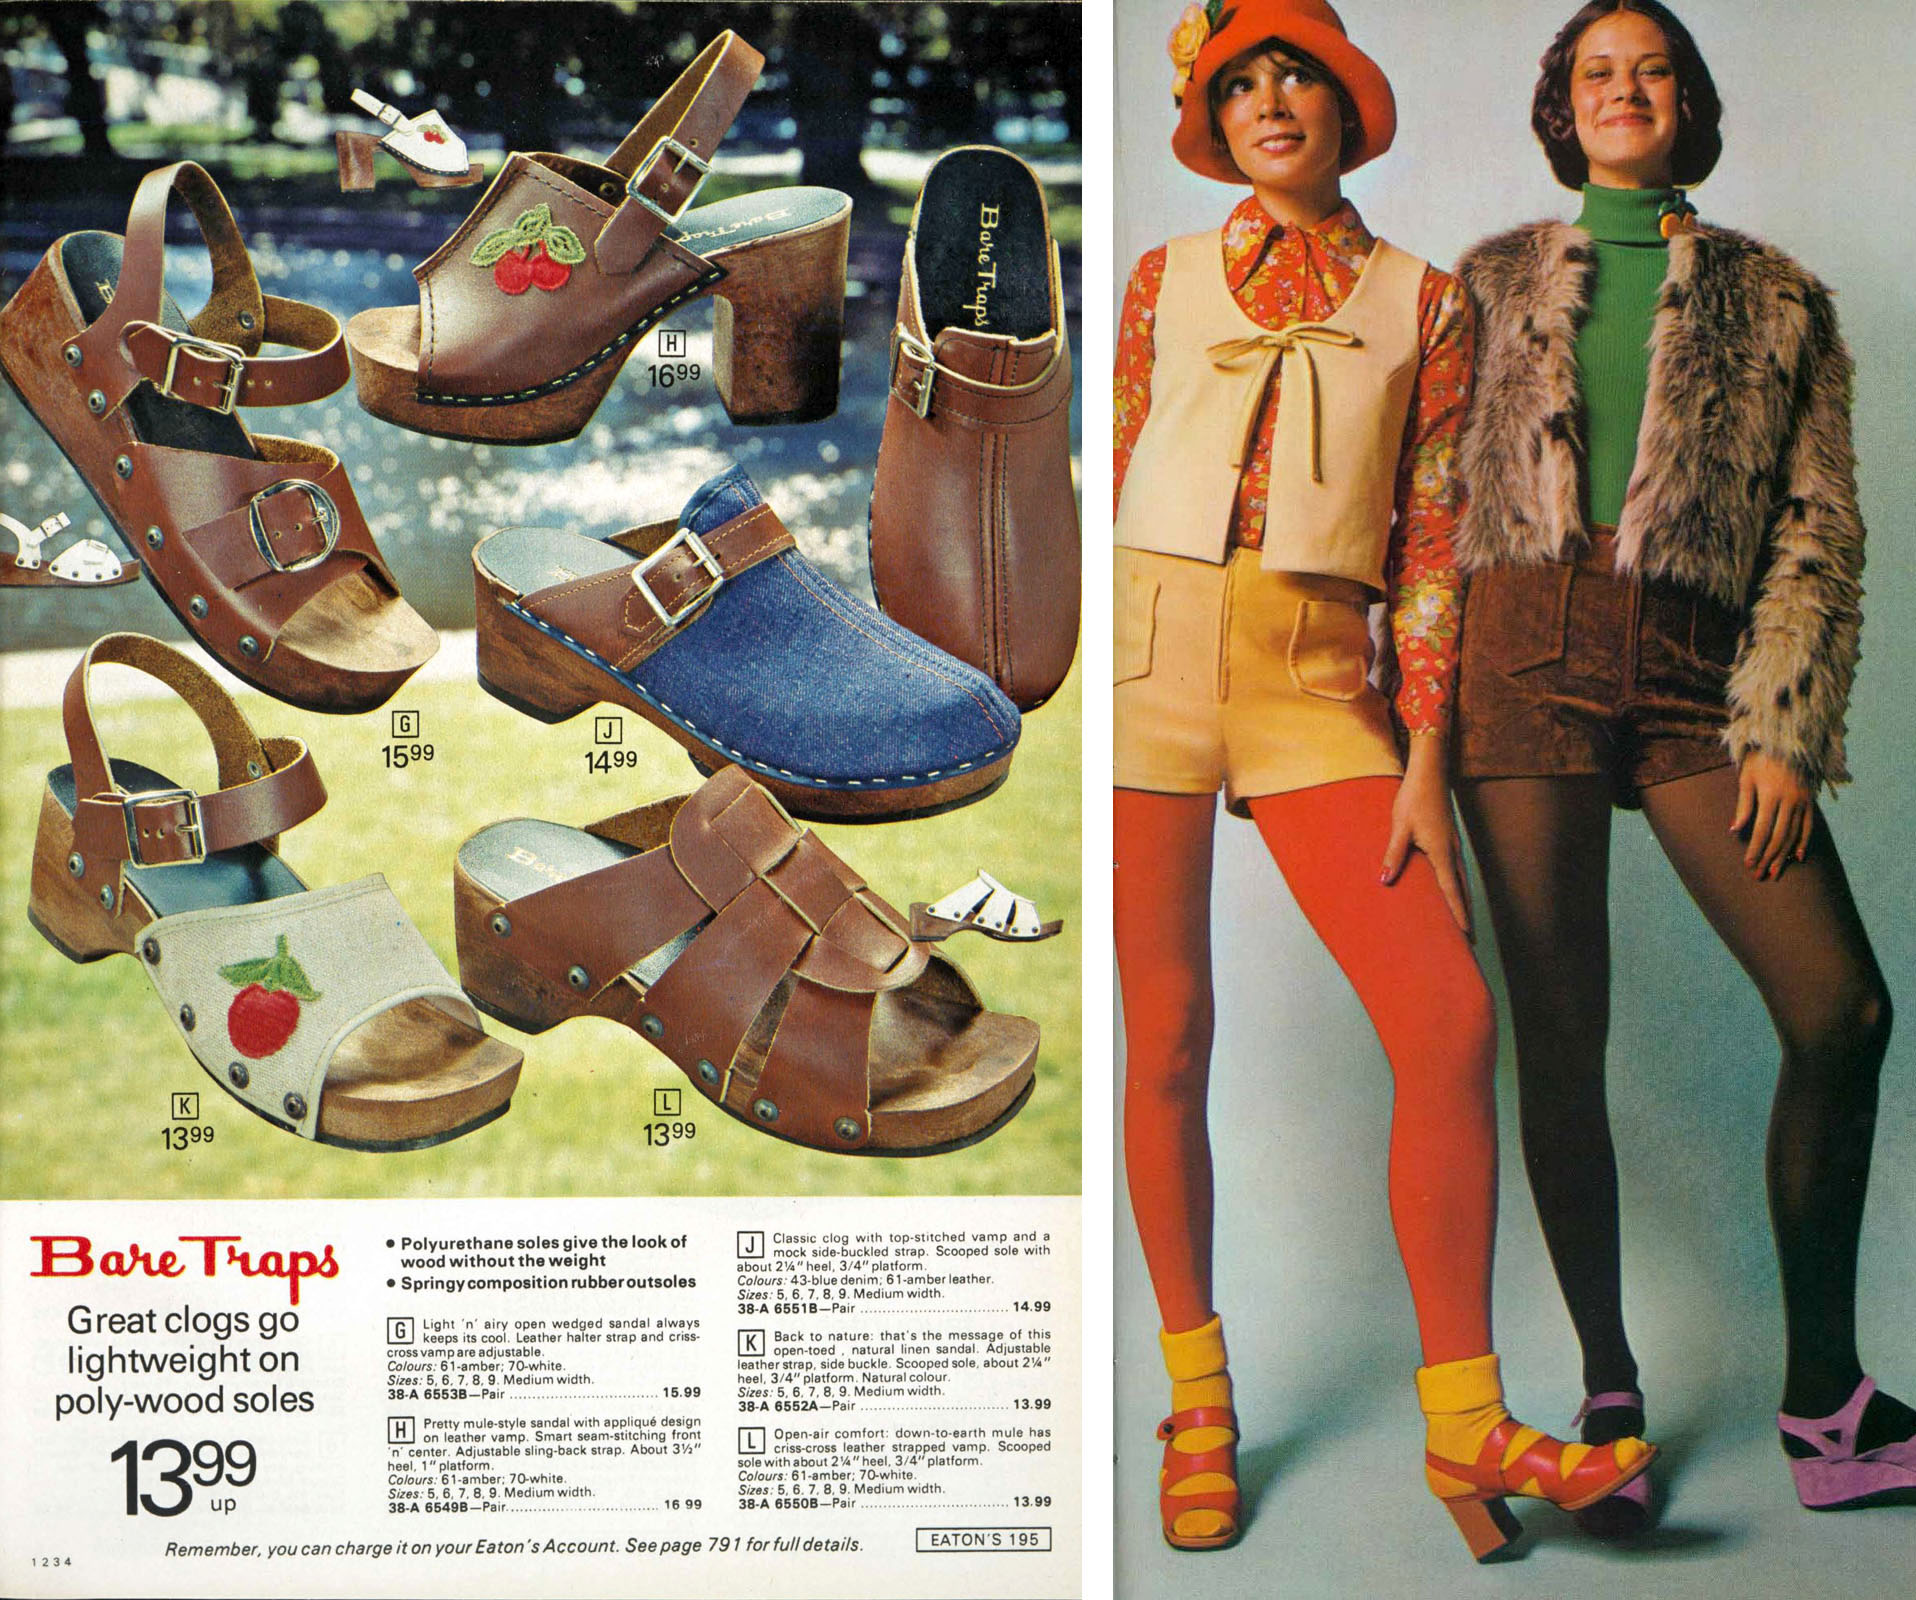 f5b7f54963bb3 Platforms: The Official Footwear of the '70s - Flashbak